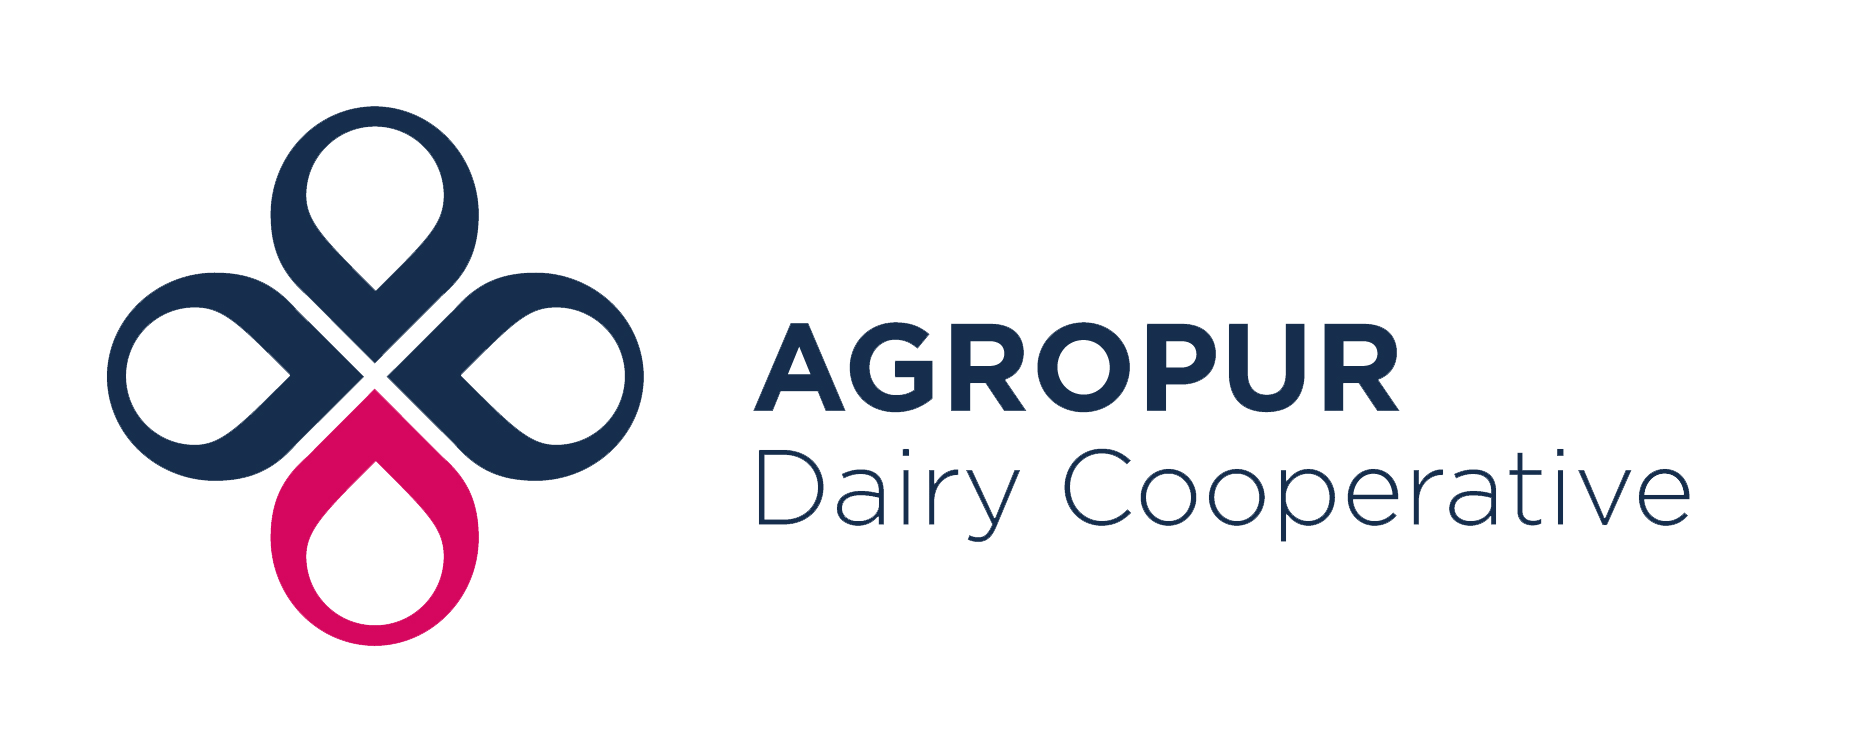 Agropur_visual_identity_COLOR_EN.png